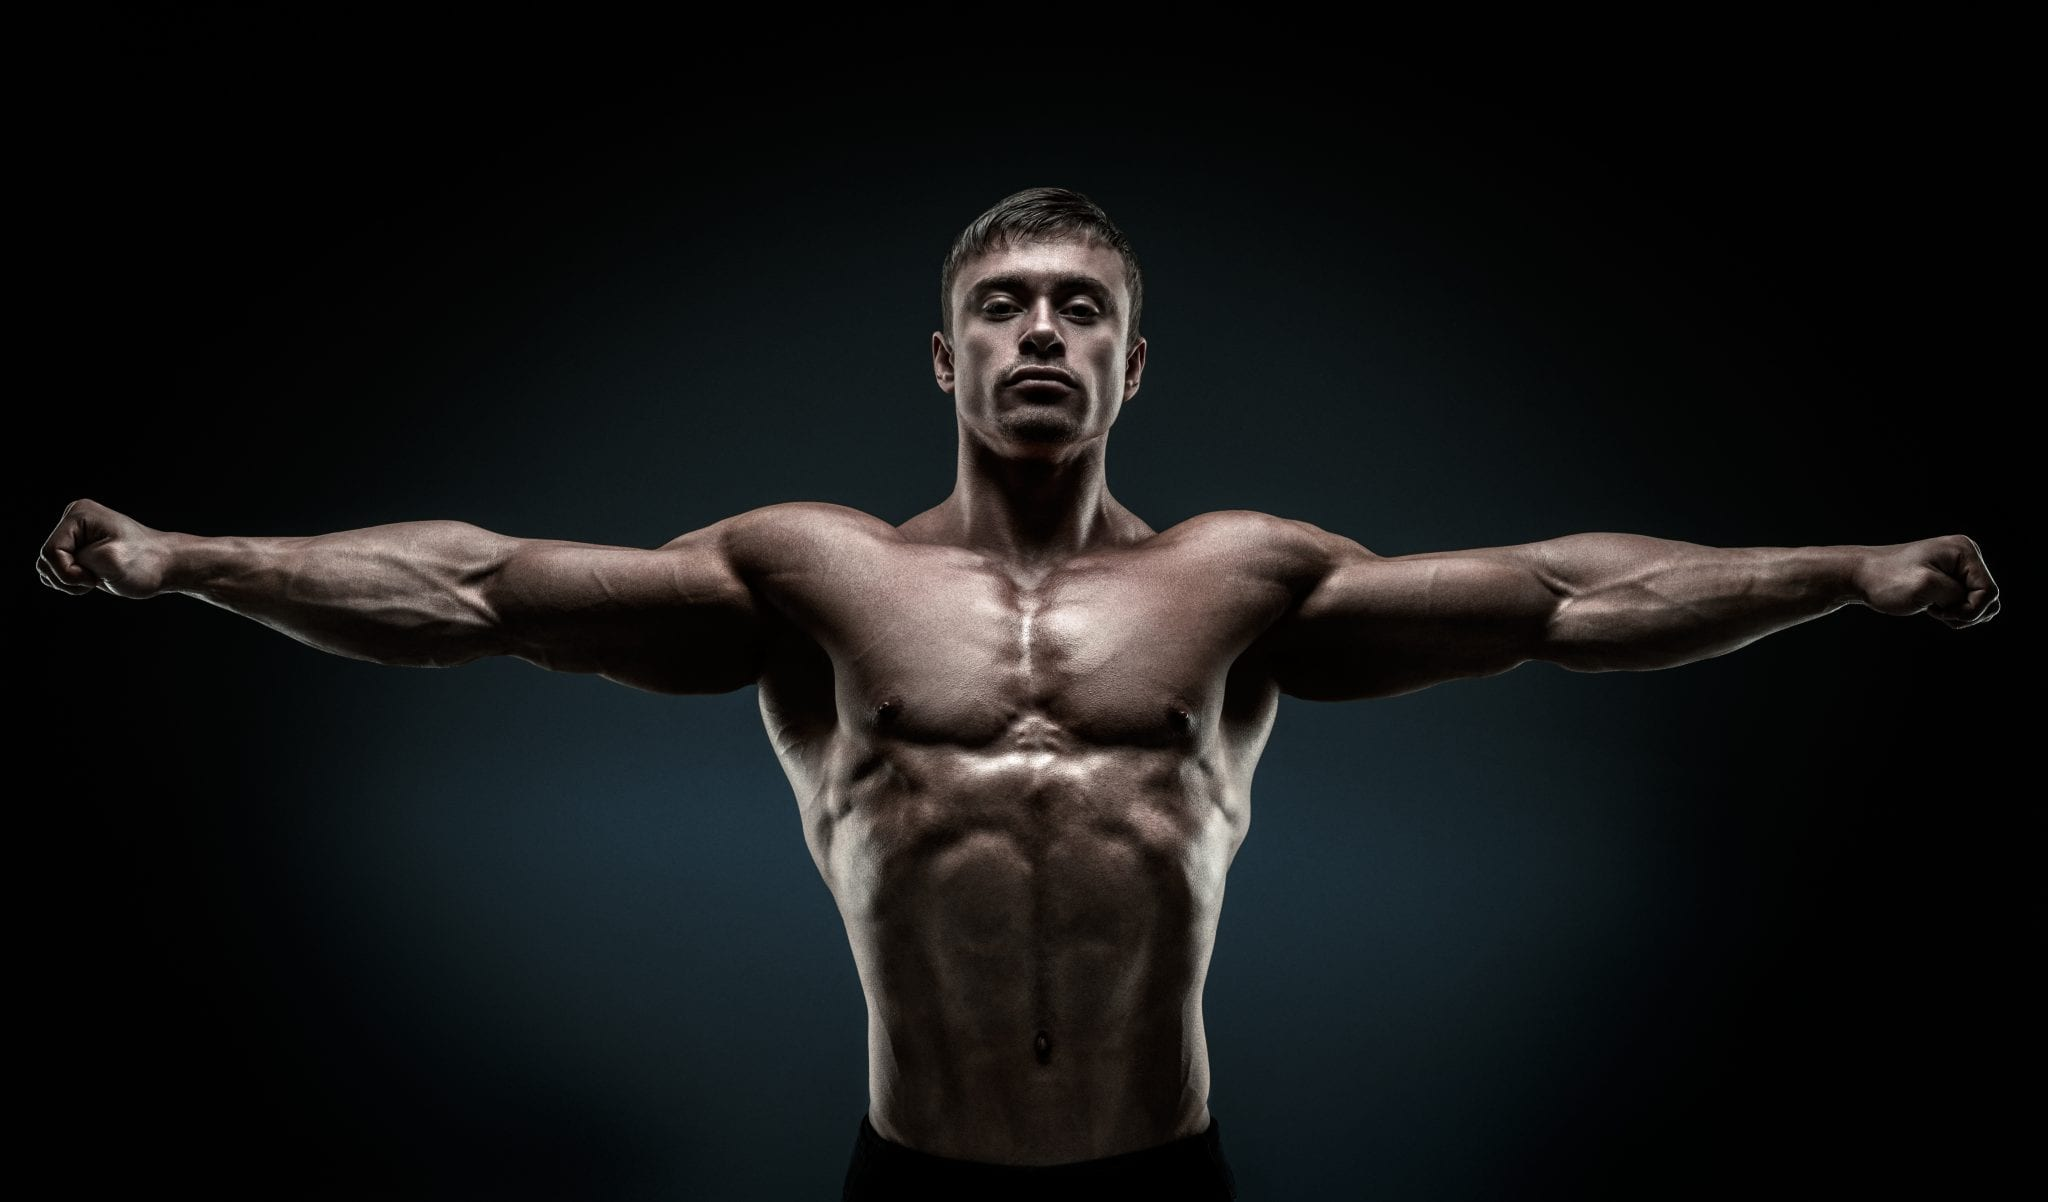 The Big 3-0: 30 Ways To Boost Testosterone After 30 - Average 2 Alpha